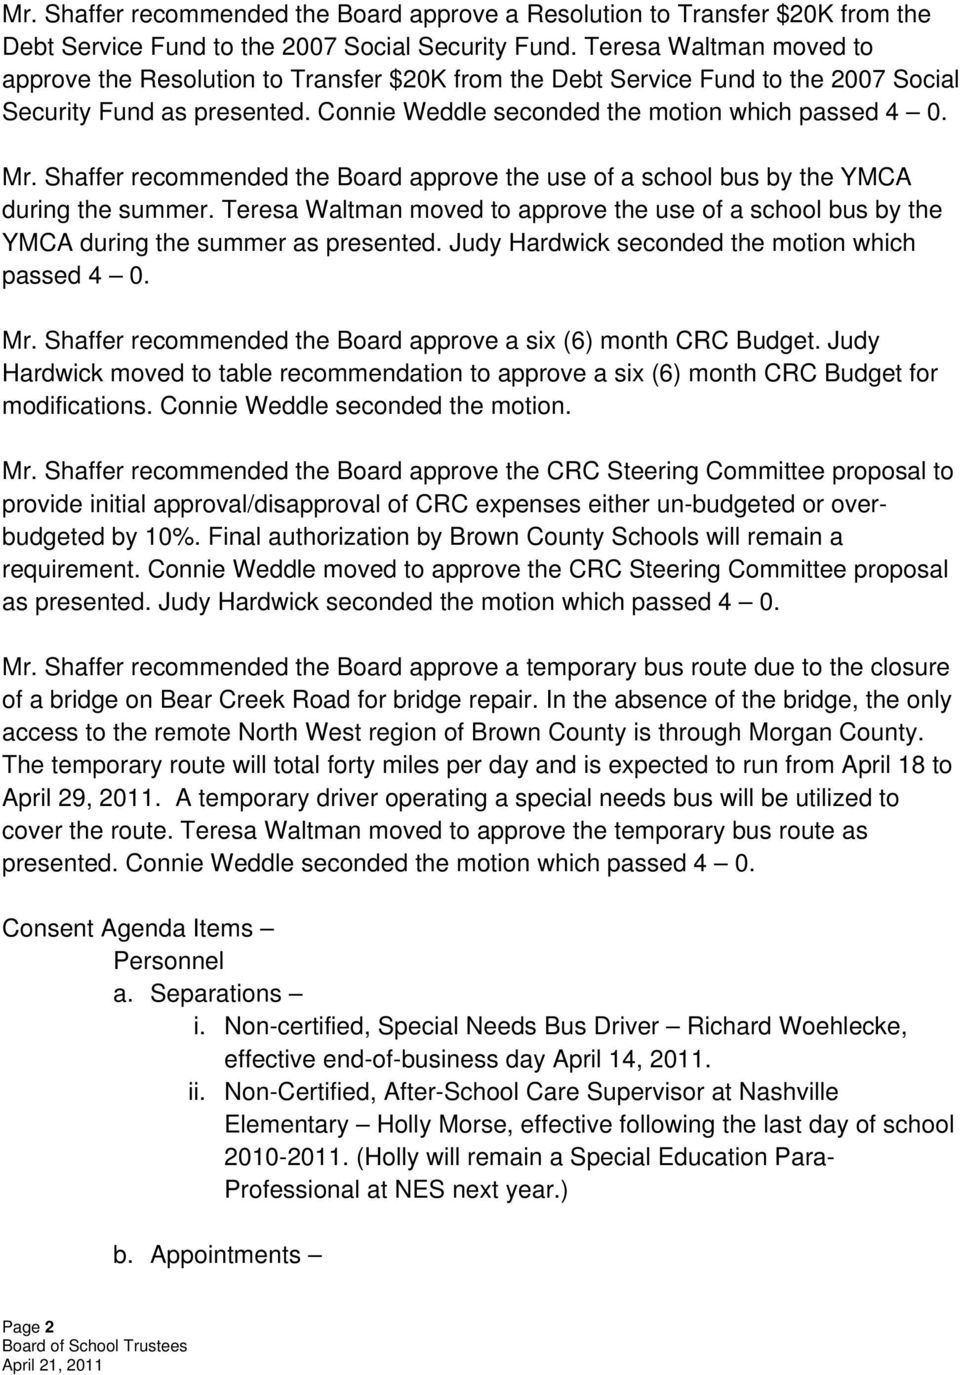 Shaffer recommended the Board approve the use of a school bus by the YMCA during the summer. Teresa Waltman moved to approve the use of a school bus by the YMCA during the summer as presented.